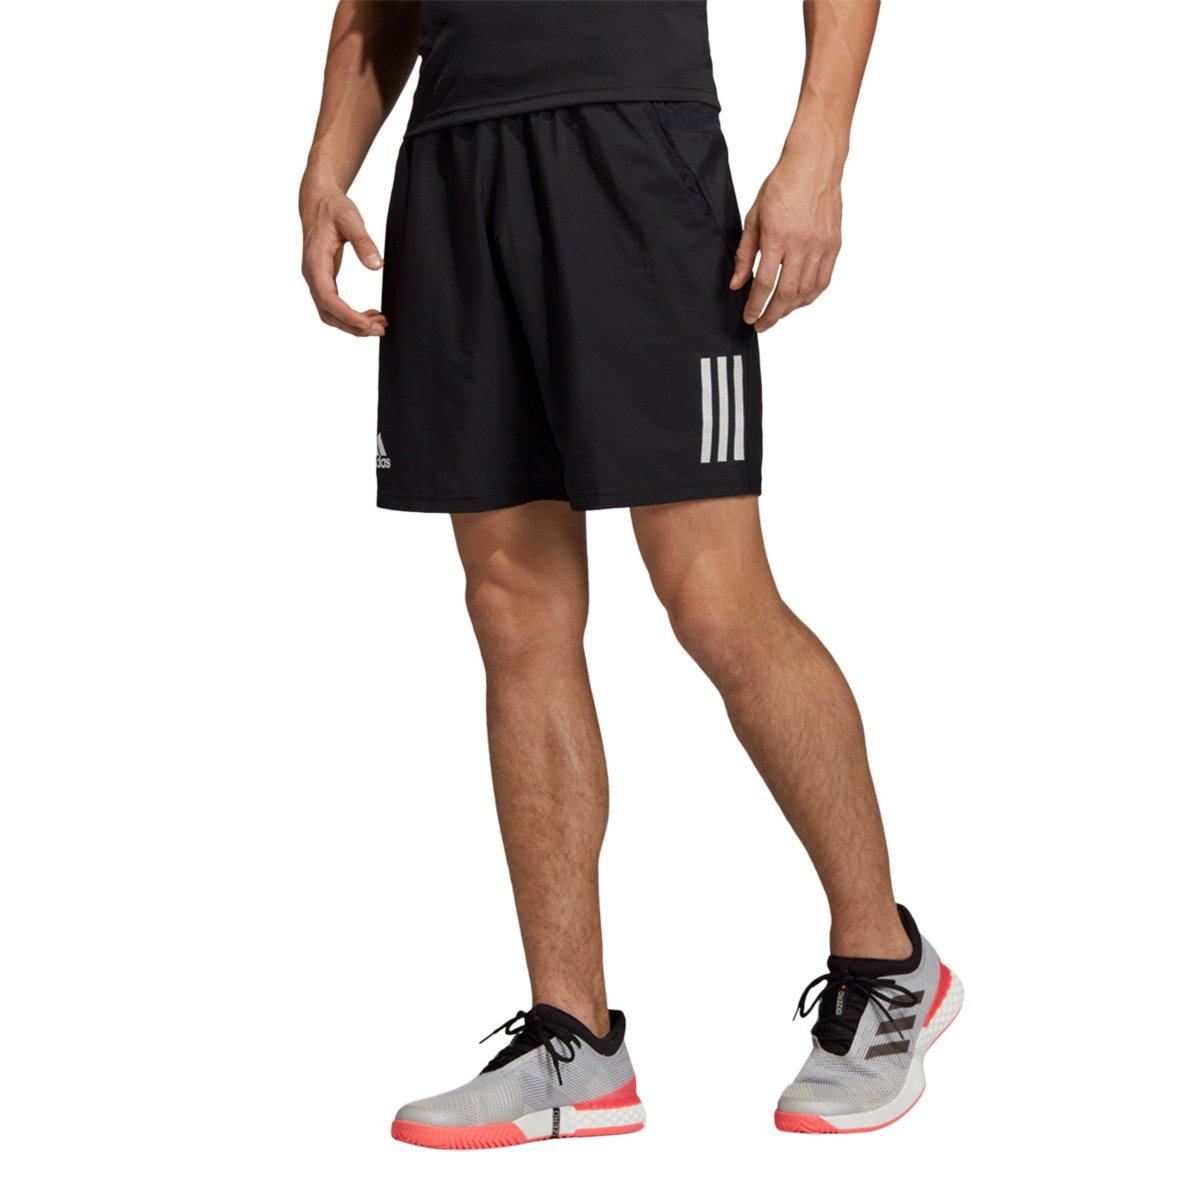 Short Adidas Club 3 Stripes Masculino Preto e Branco